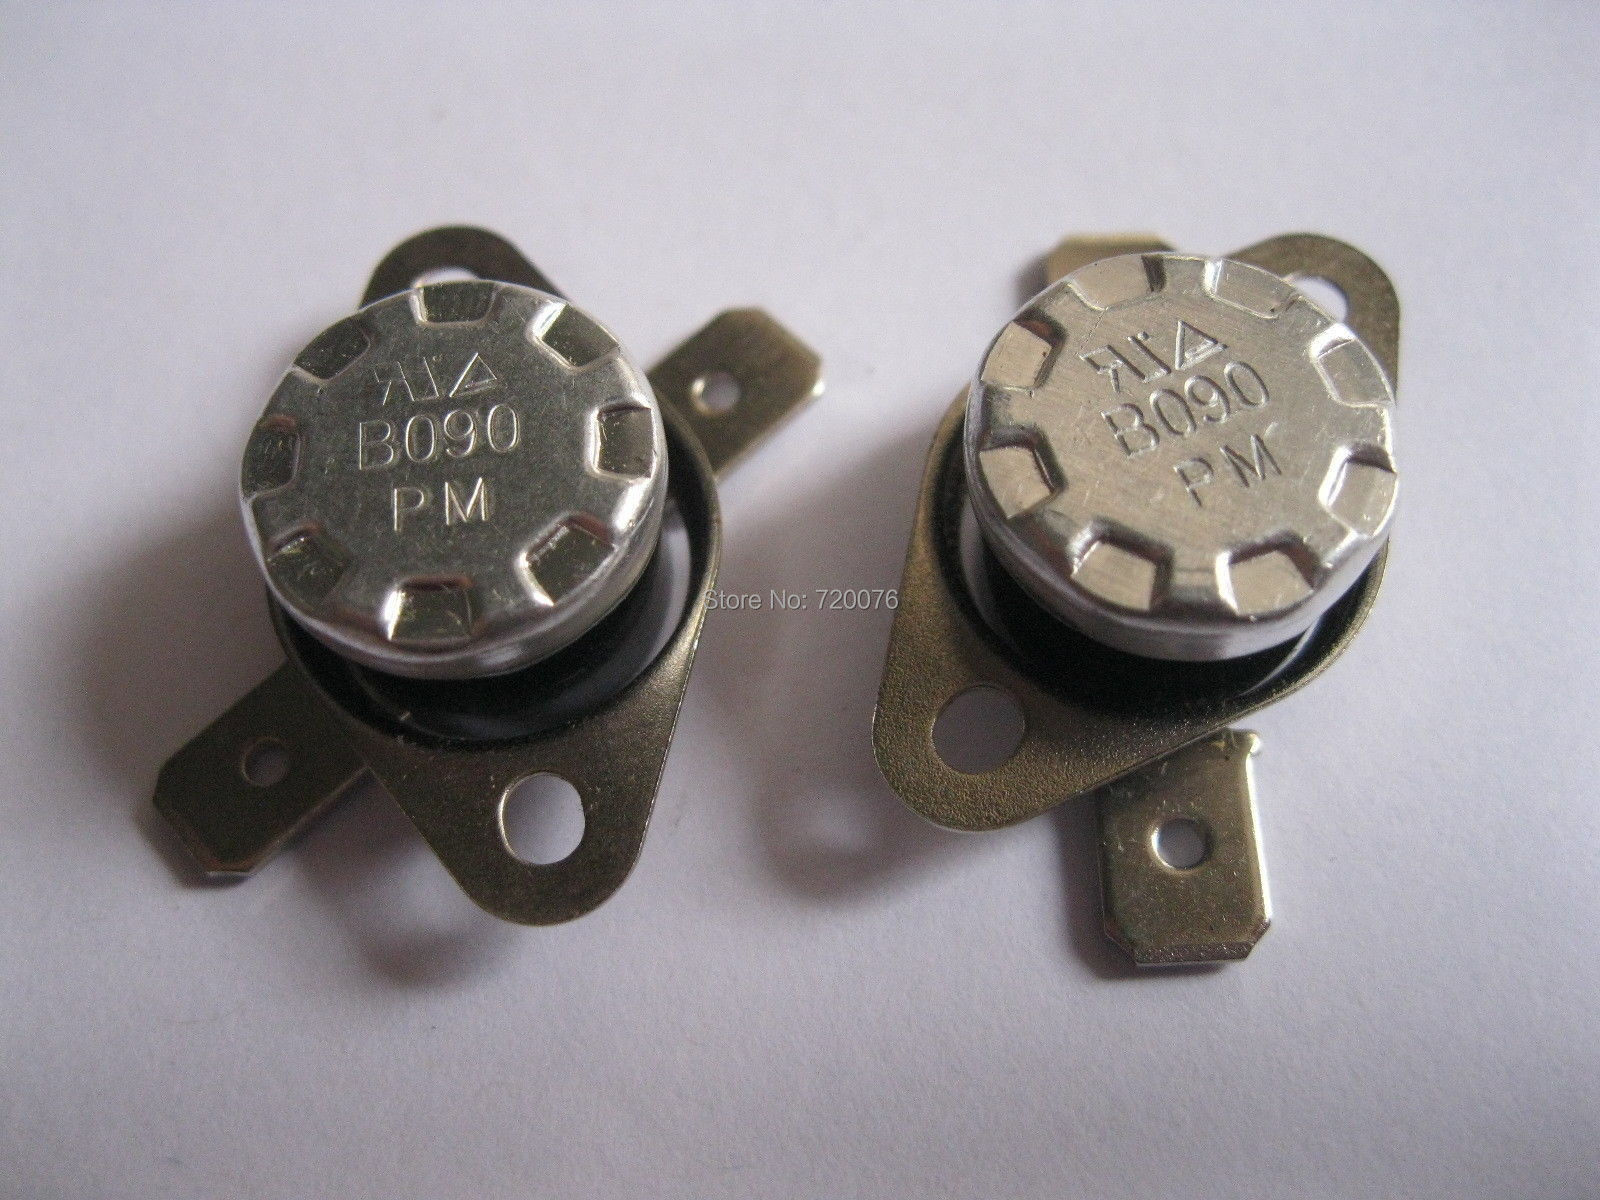 цена на 50 pcs Temperature Switch Thermostat 90 Degree N.C. KSD301 Normal Close